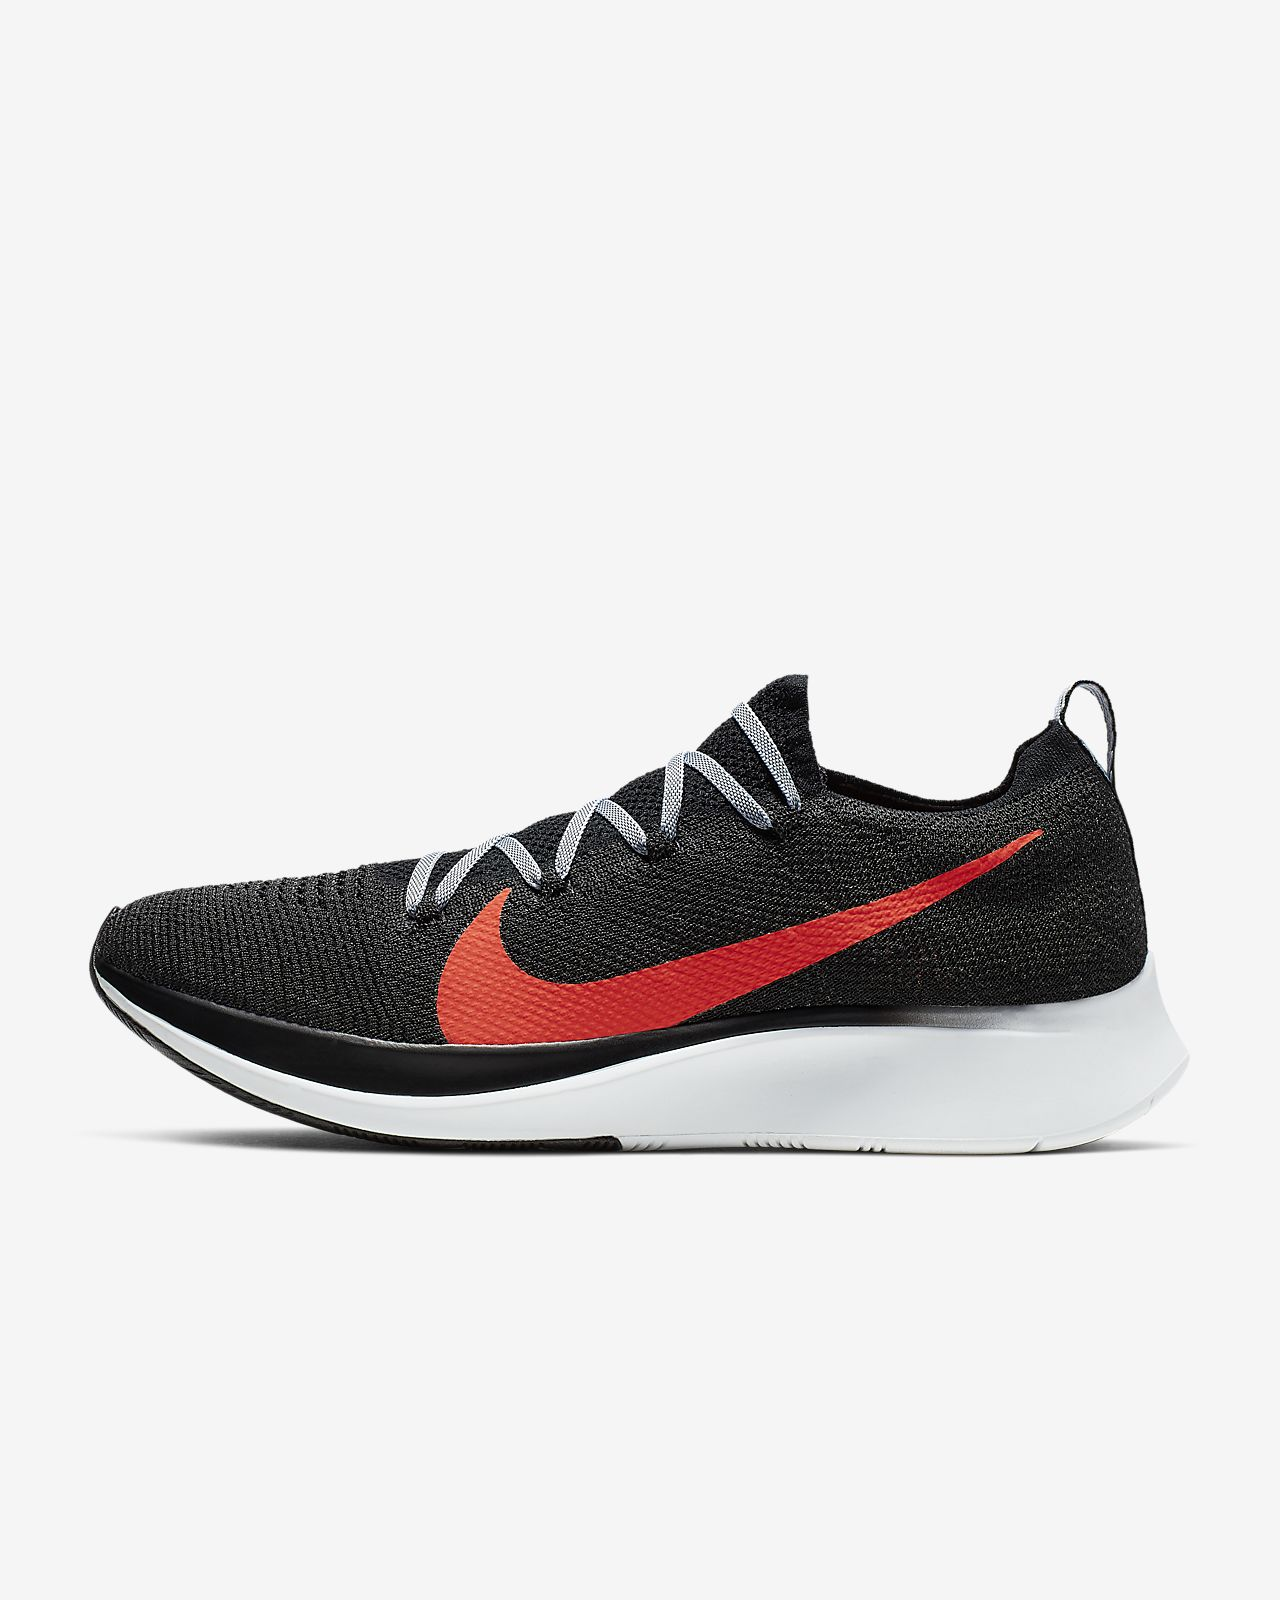 597f6746b321 Nike Zoom Fly Flyknit Men s Running Shoe. Nike.com